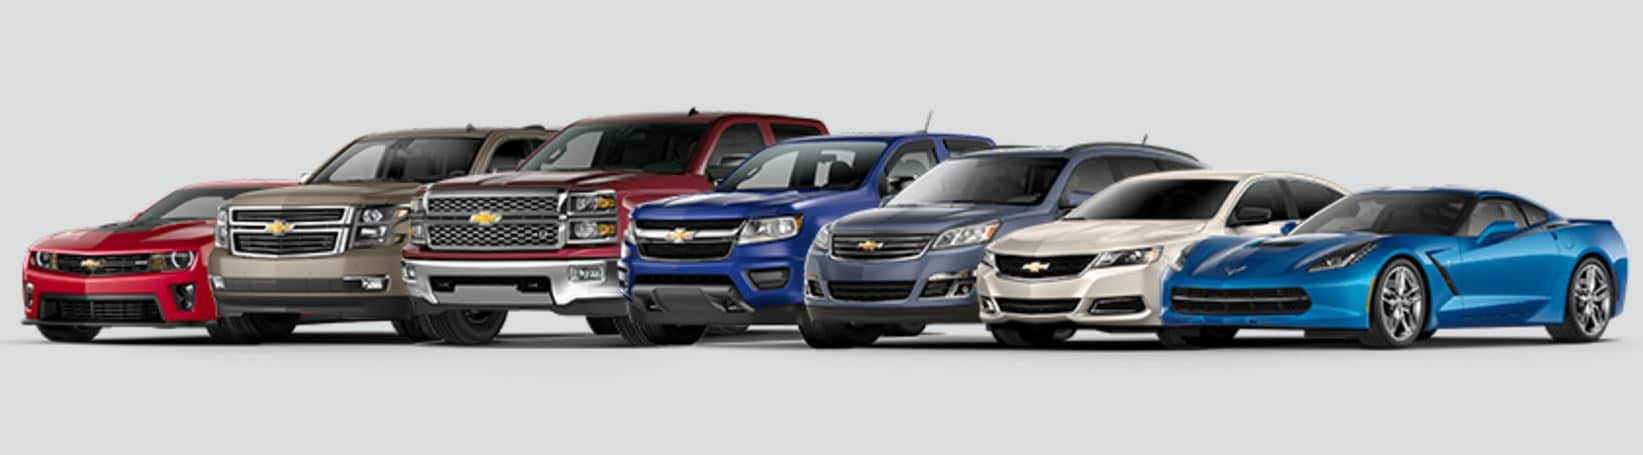 used chevrolet gm chevy dealer pre owned ottawa